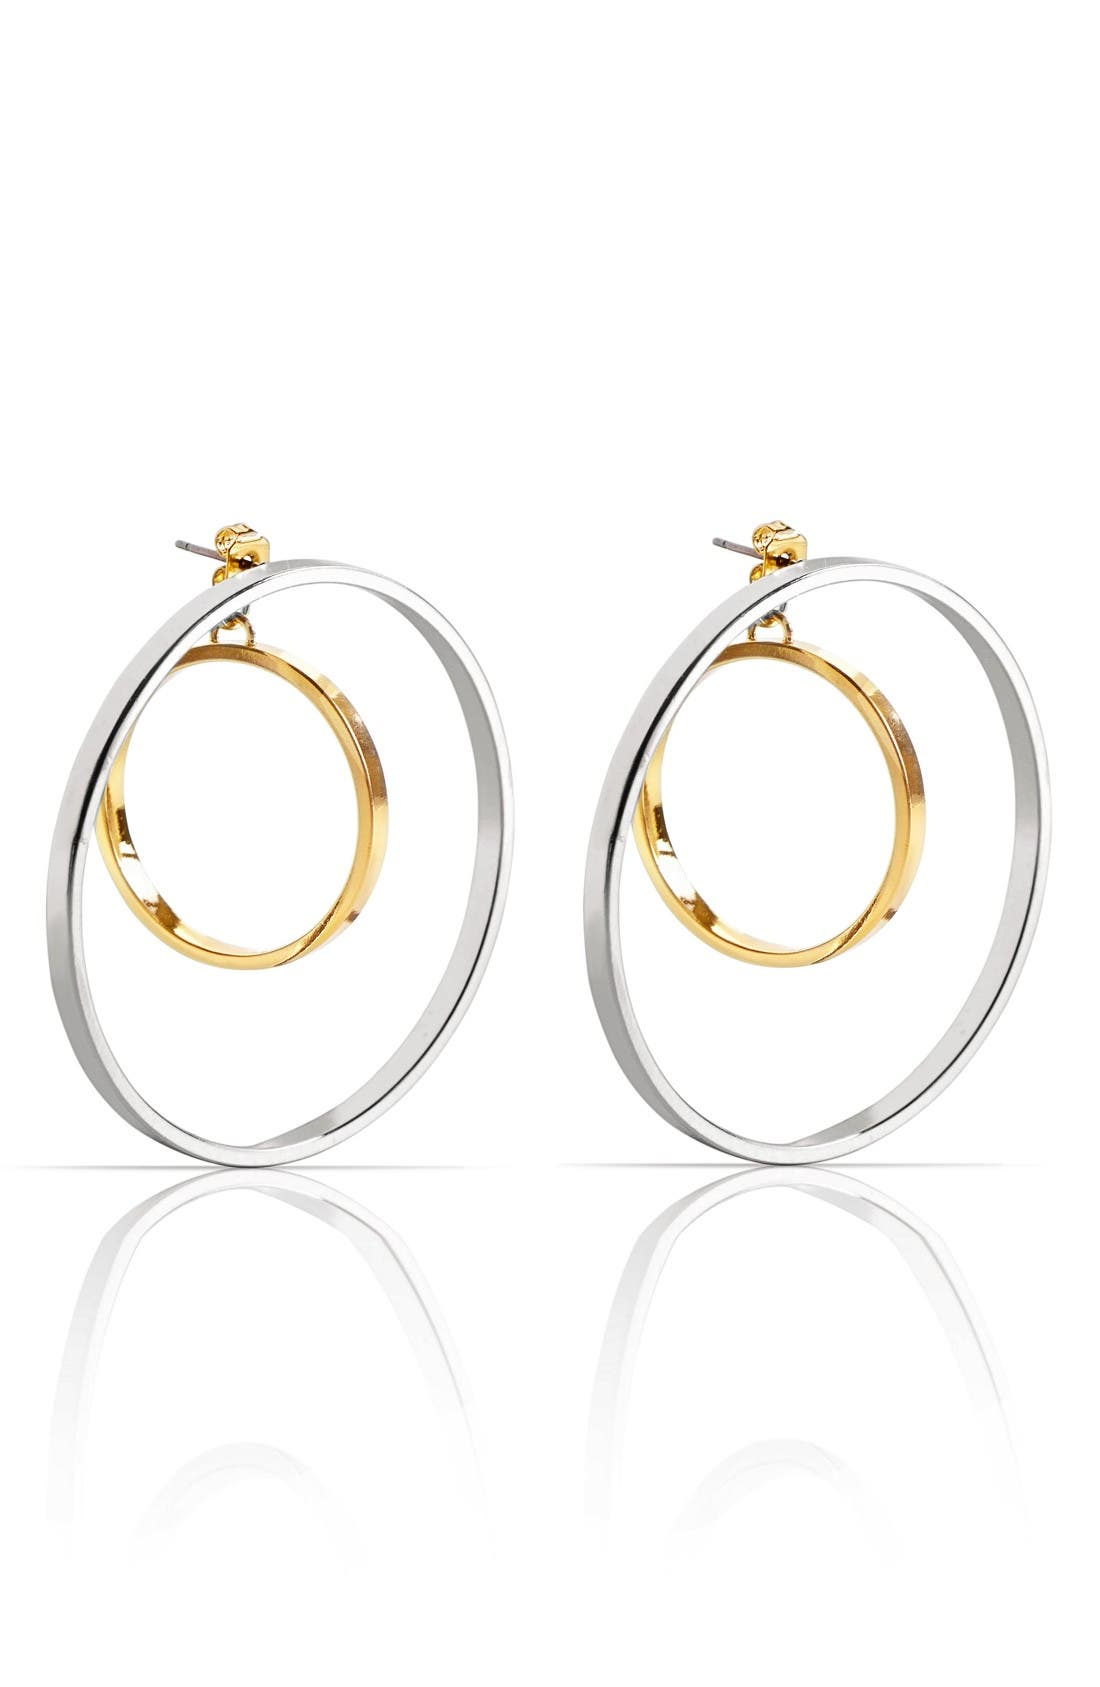 Rise Hoop Earrings,                         Main,                         color, Two Tone